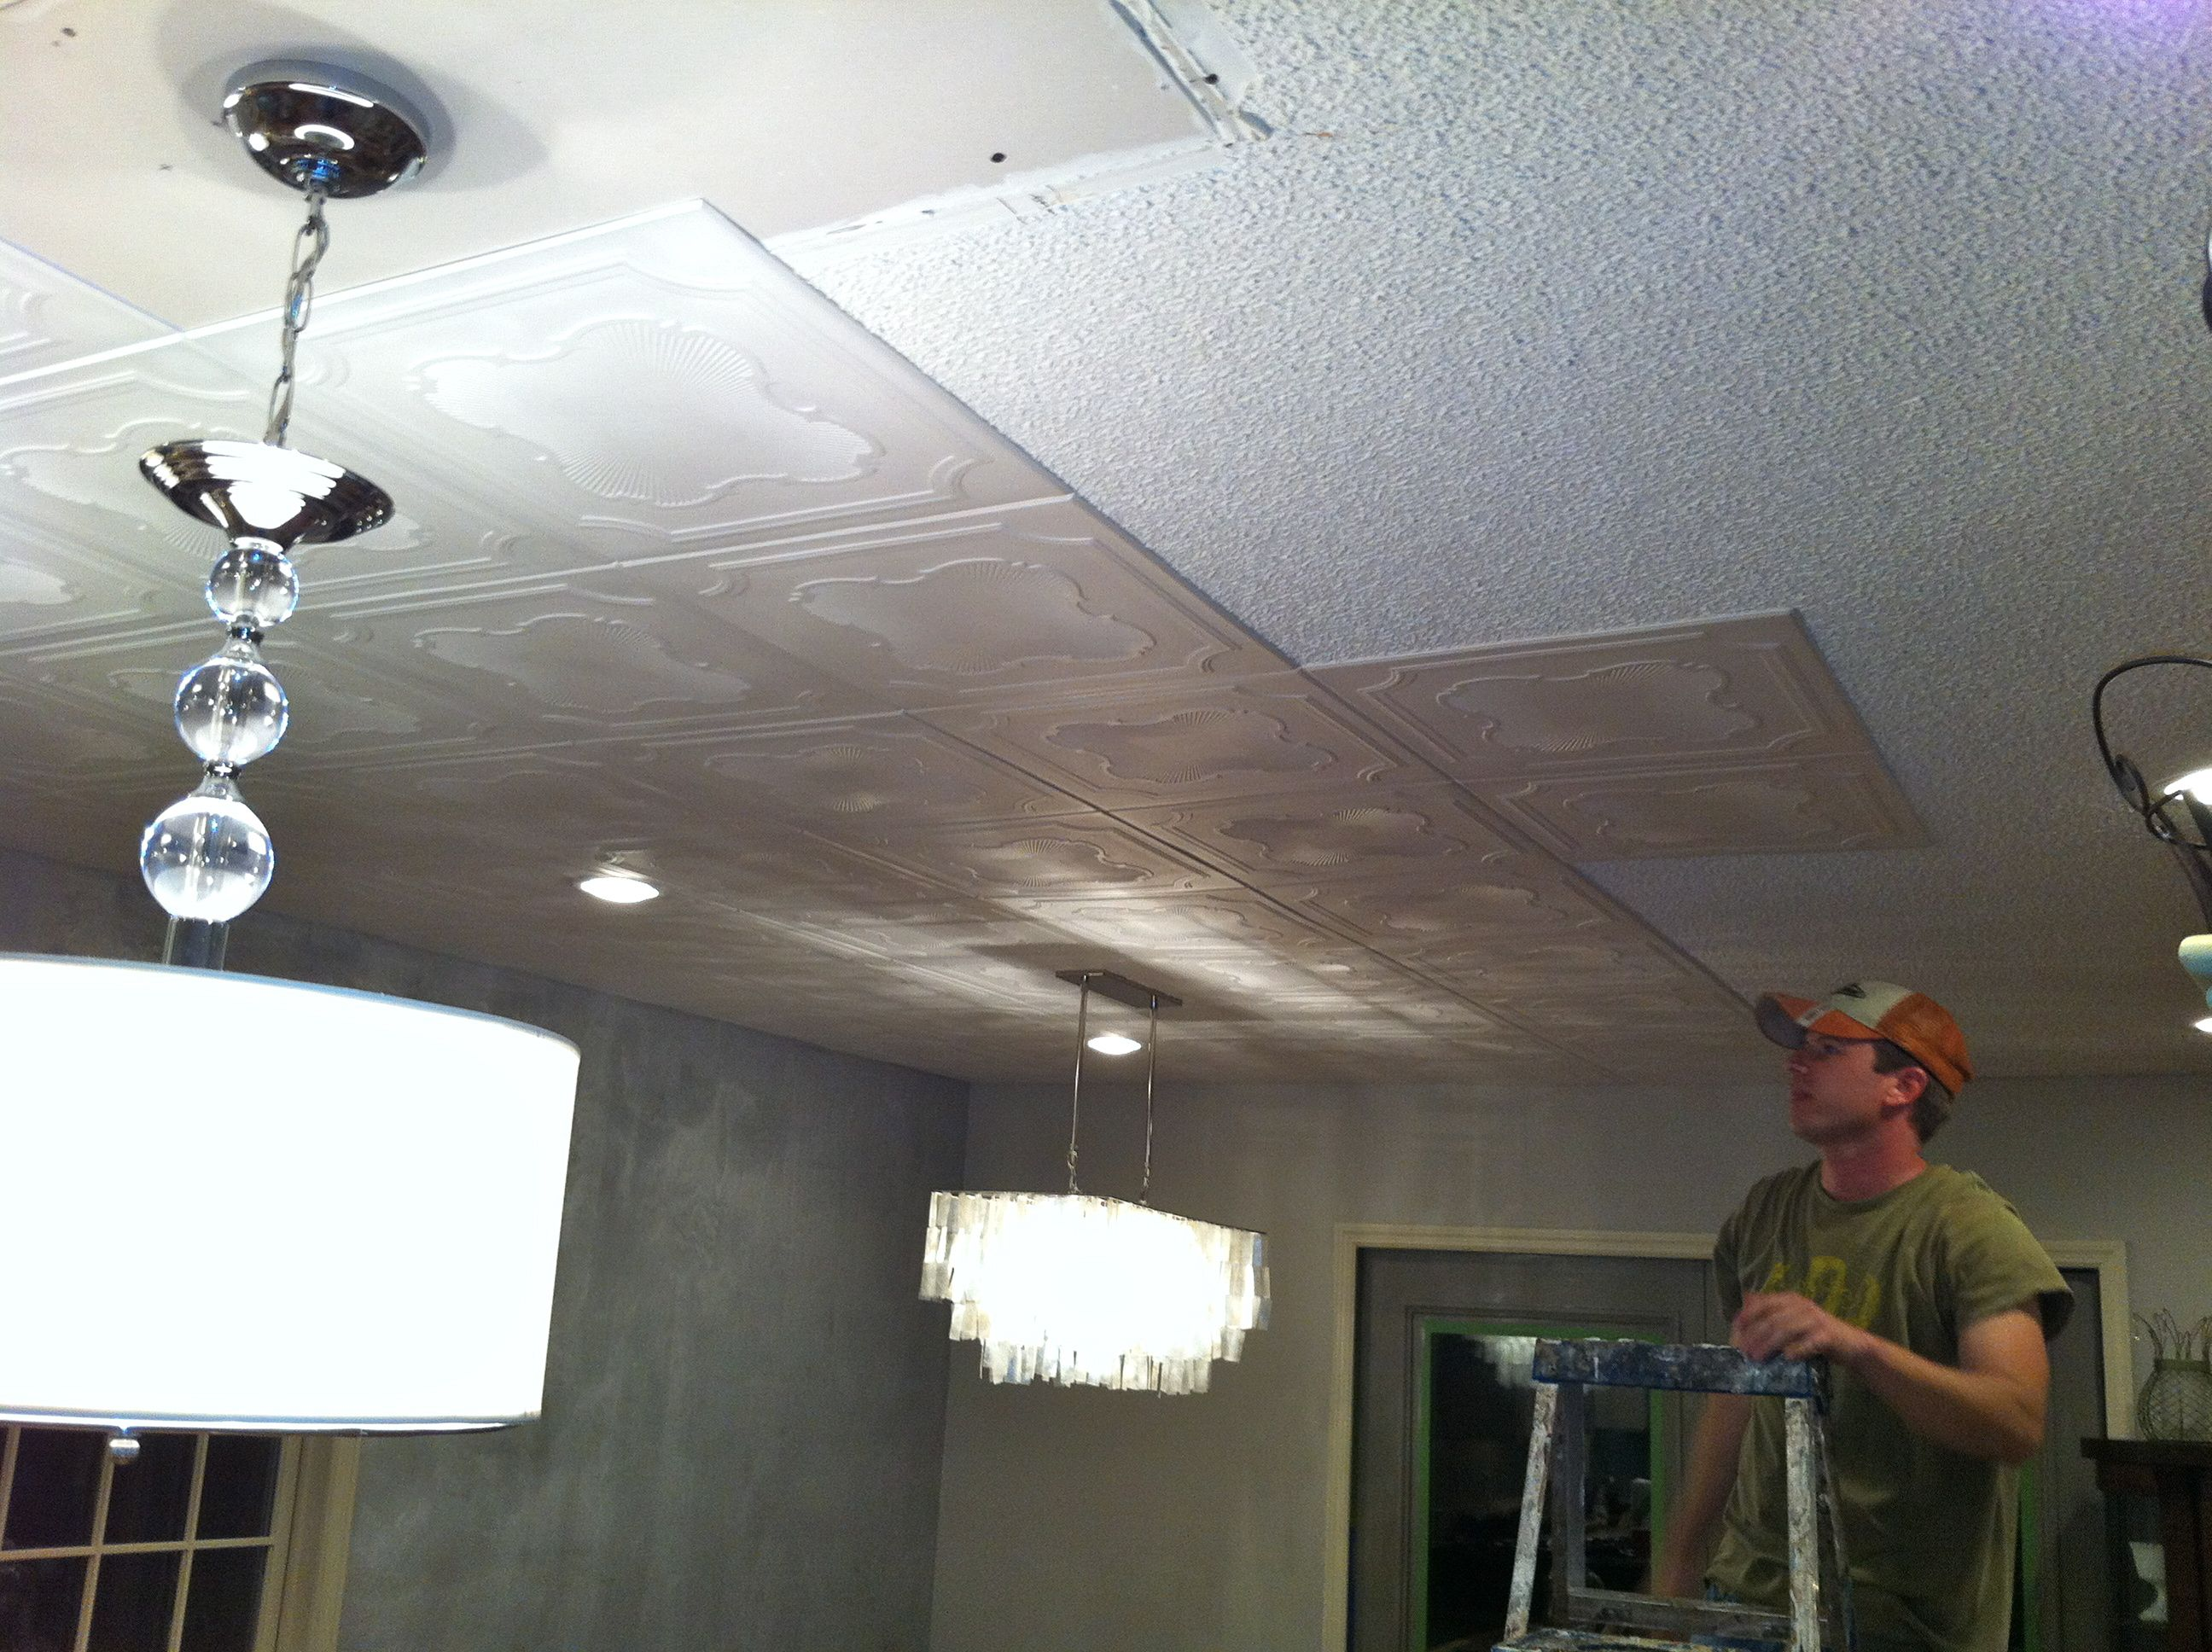 superior Ceiling Tiles Over Popcorn Ceiling Part - 2: Styrofoam ceiling tiles glue right on top of popcorn ceilings...so cool!!!